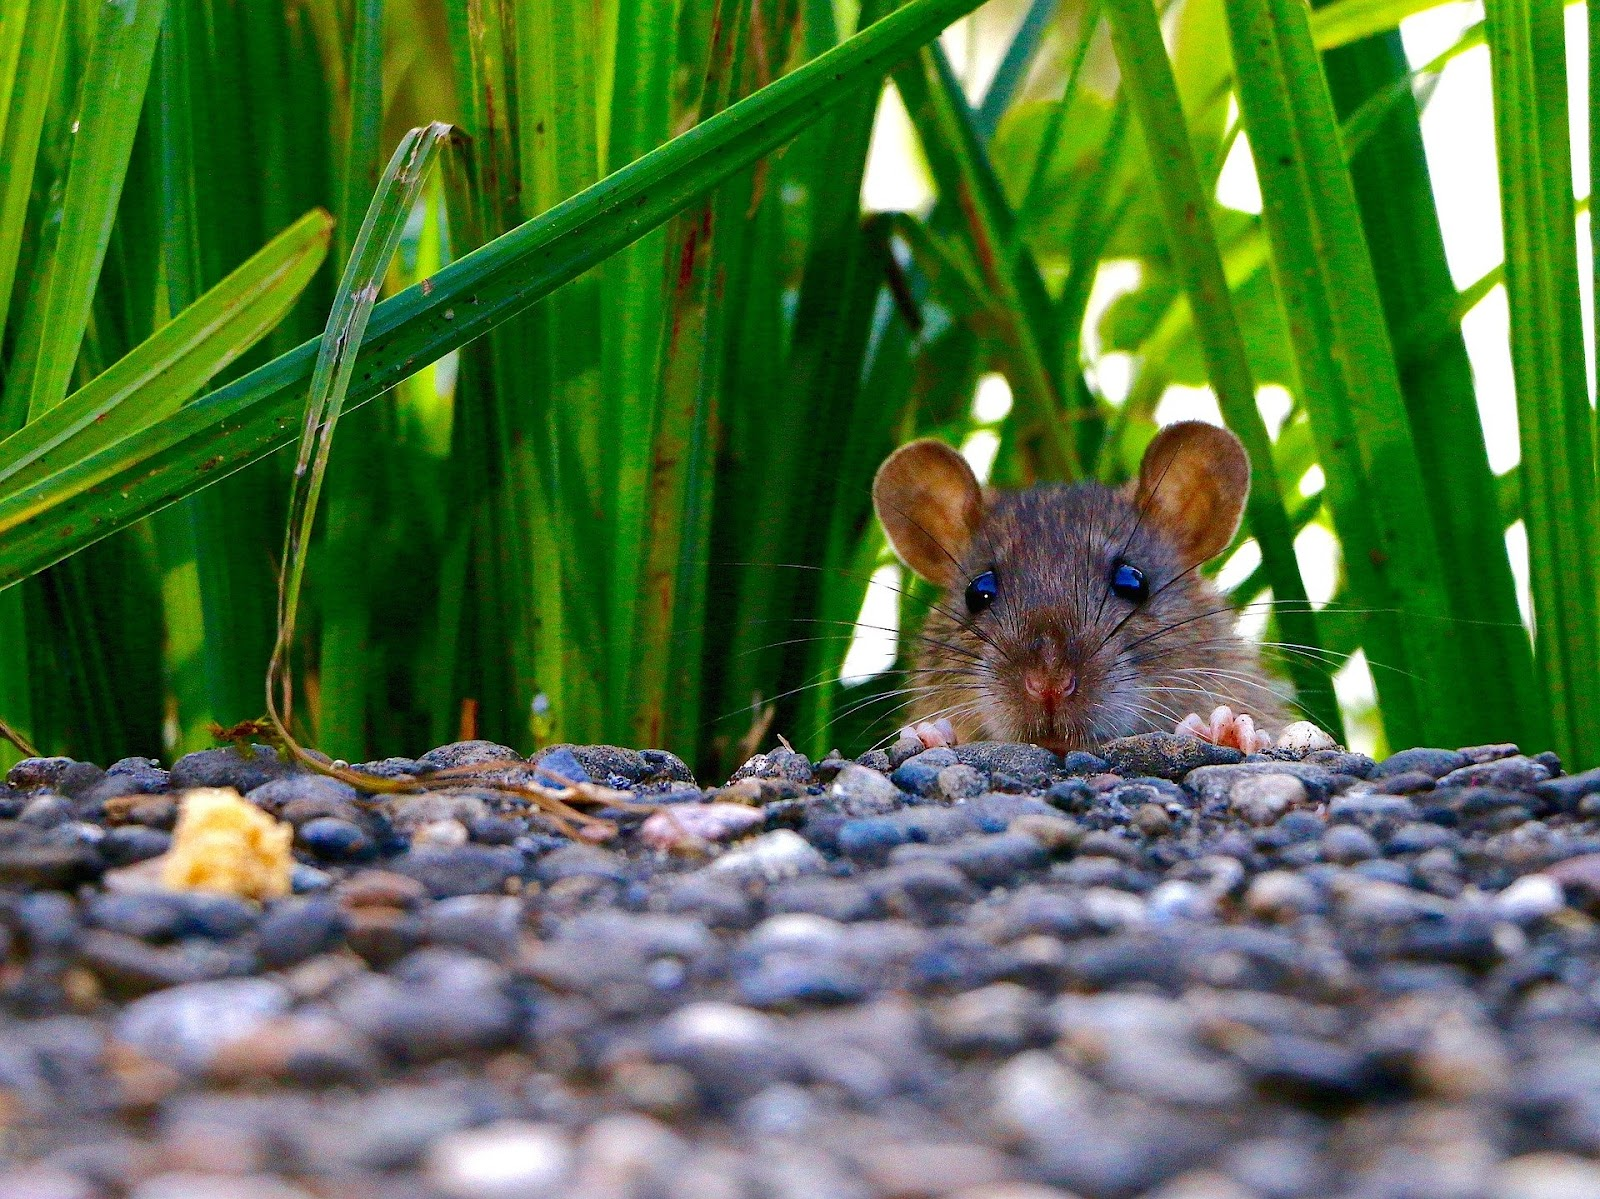 It's not clear as yet what a post-pandemic future will bring, but the implementation of exclusion tactics and bait stations can help decrease the rodent population in NYC neighborhoods.